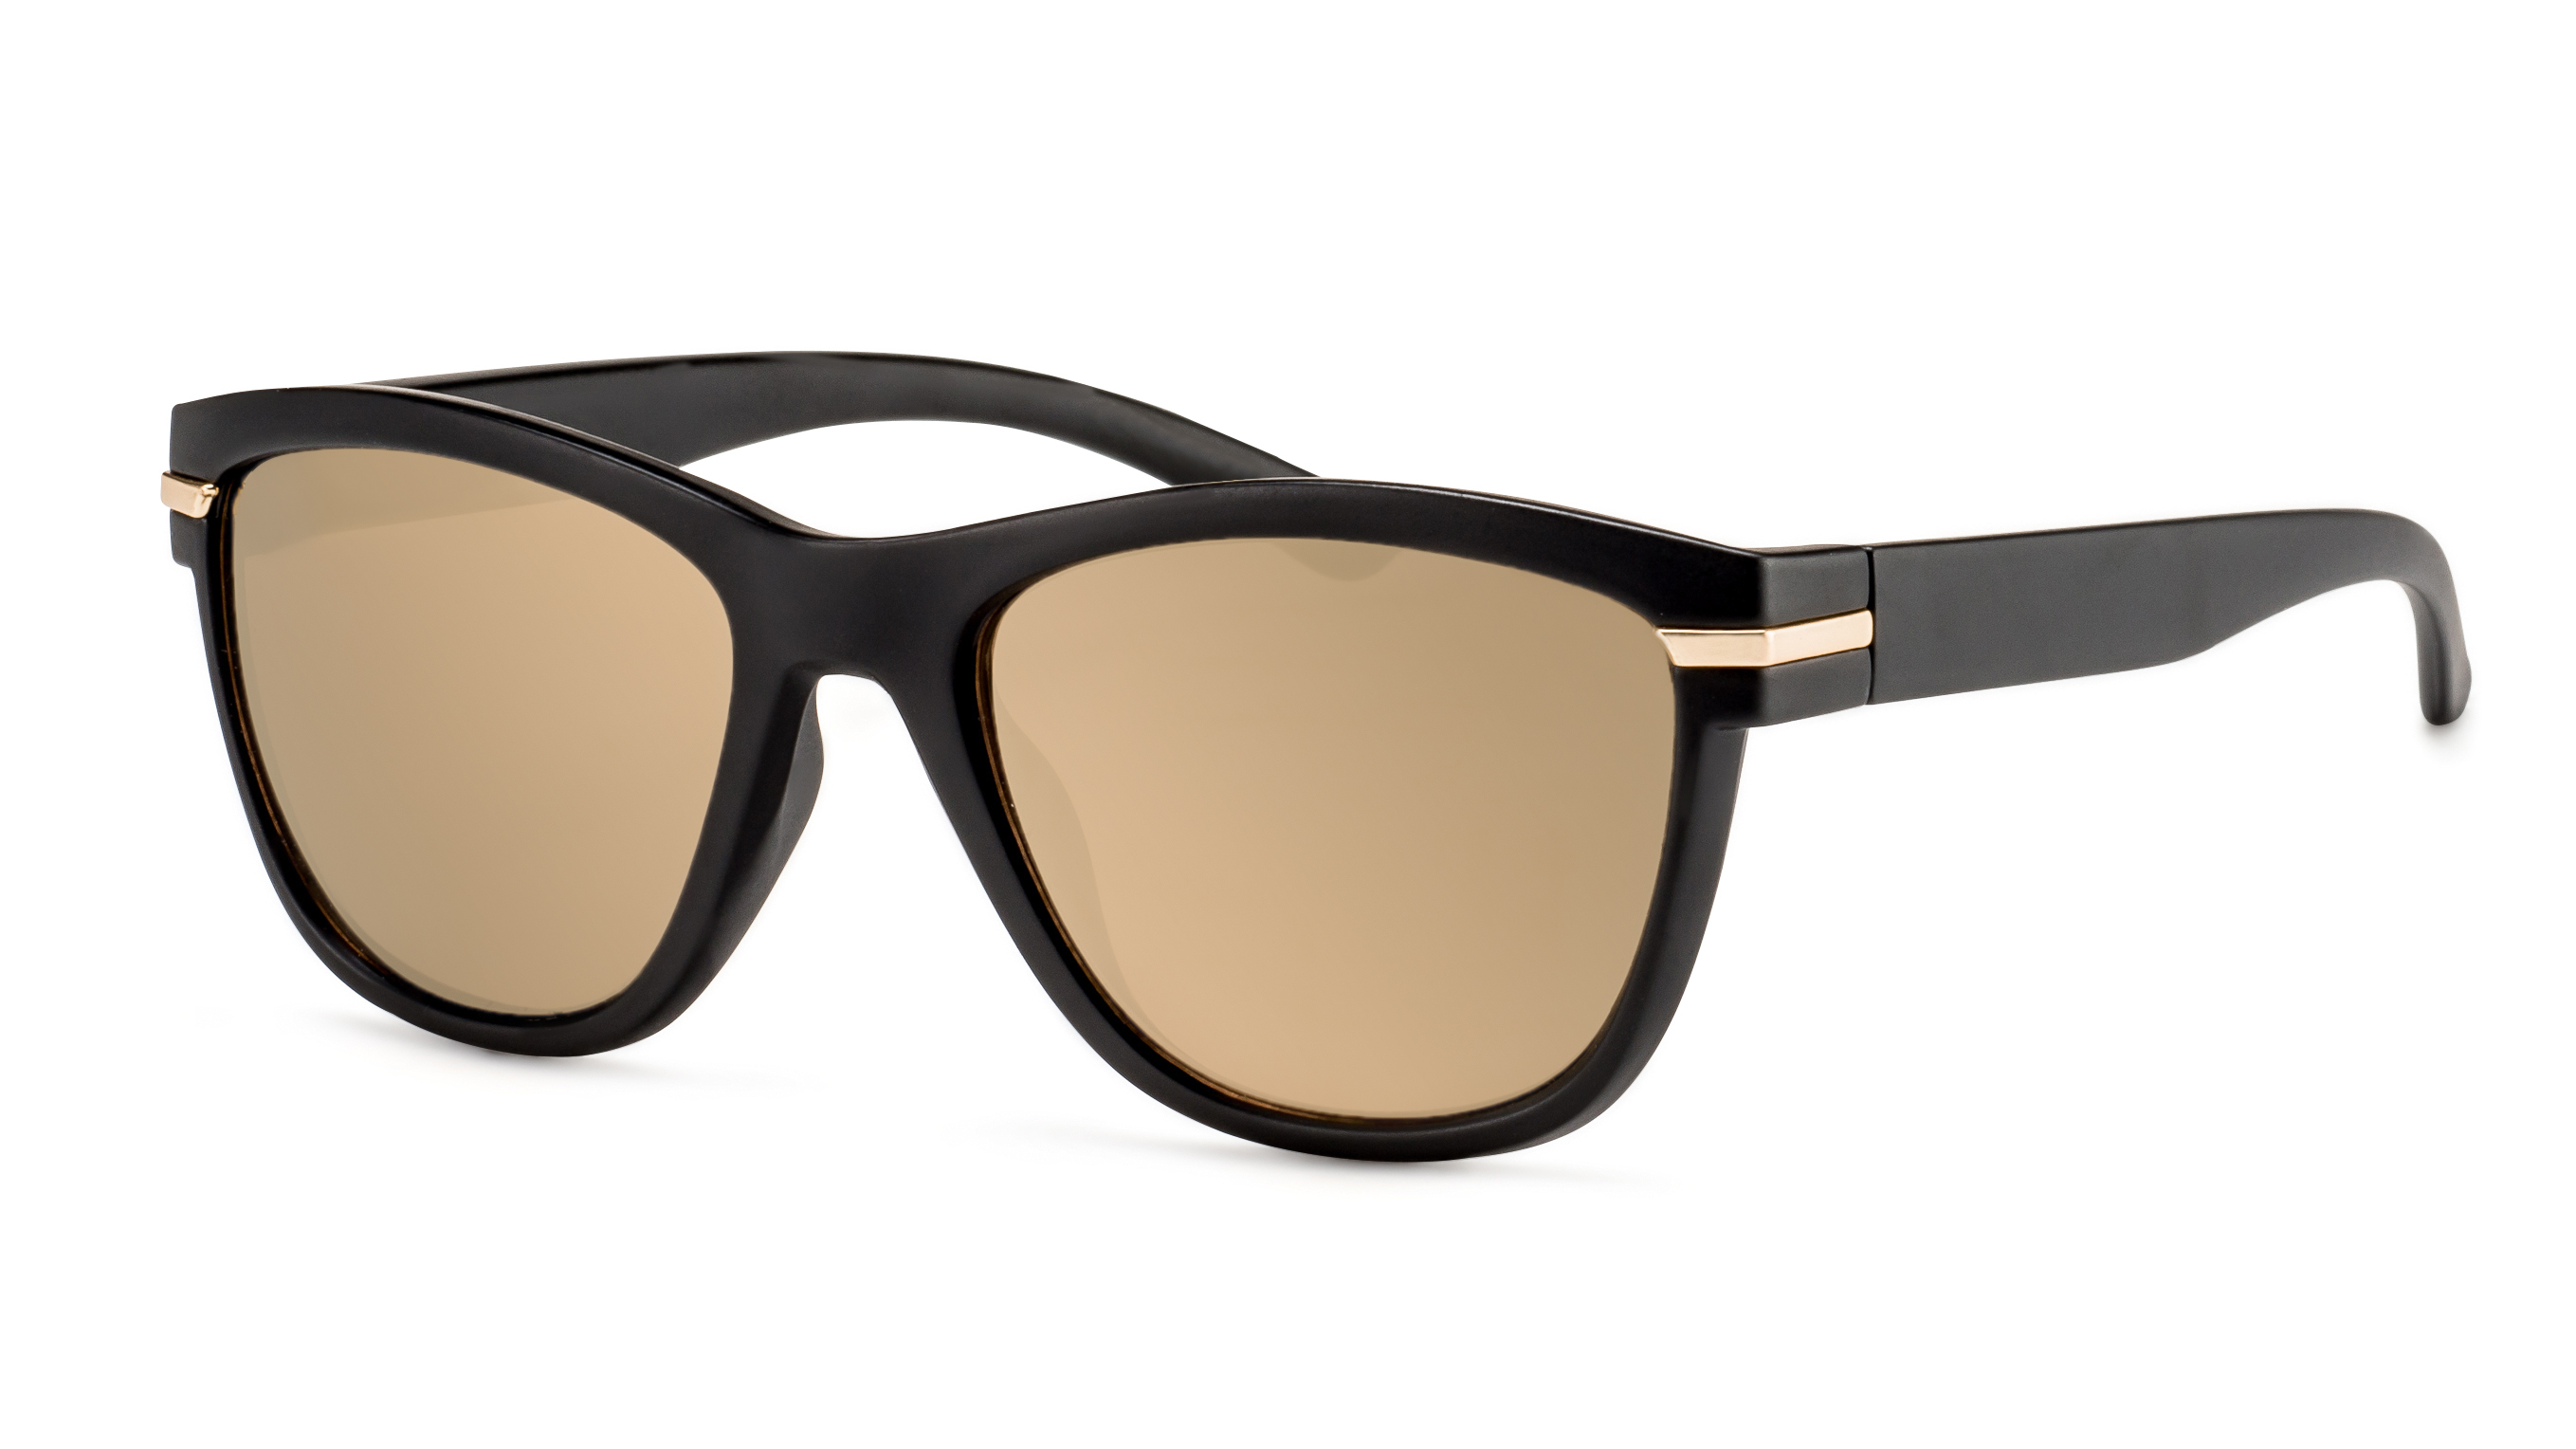 Main view sunglasses 3001049